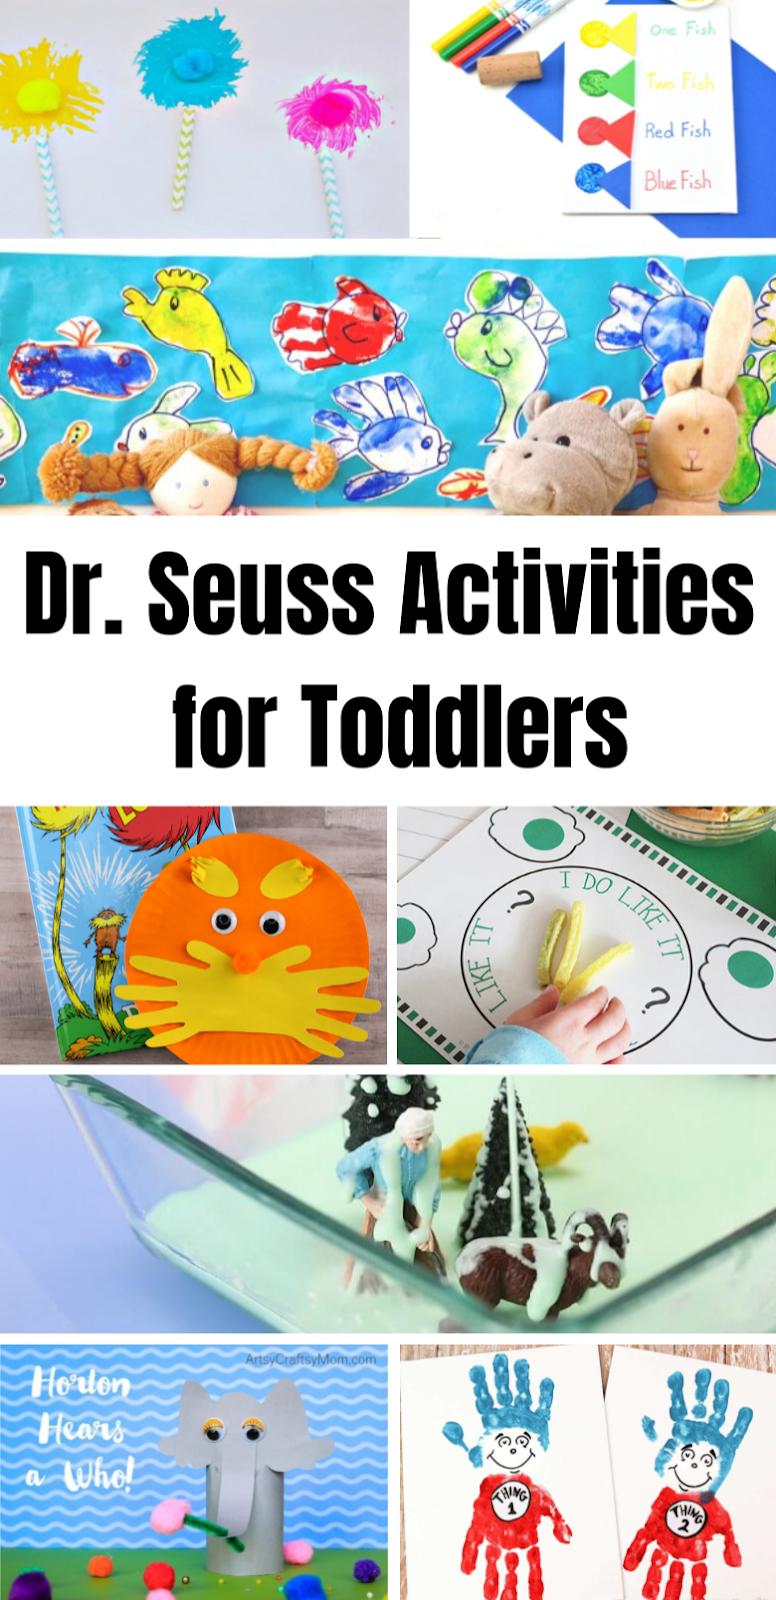 Dr Seuss Activities for Toddlers and preschoolers. A fun selection of Dr Seuss activities and Dr Seuss crafts for preschoolers and toddlers. Dr Seuss Day.